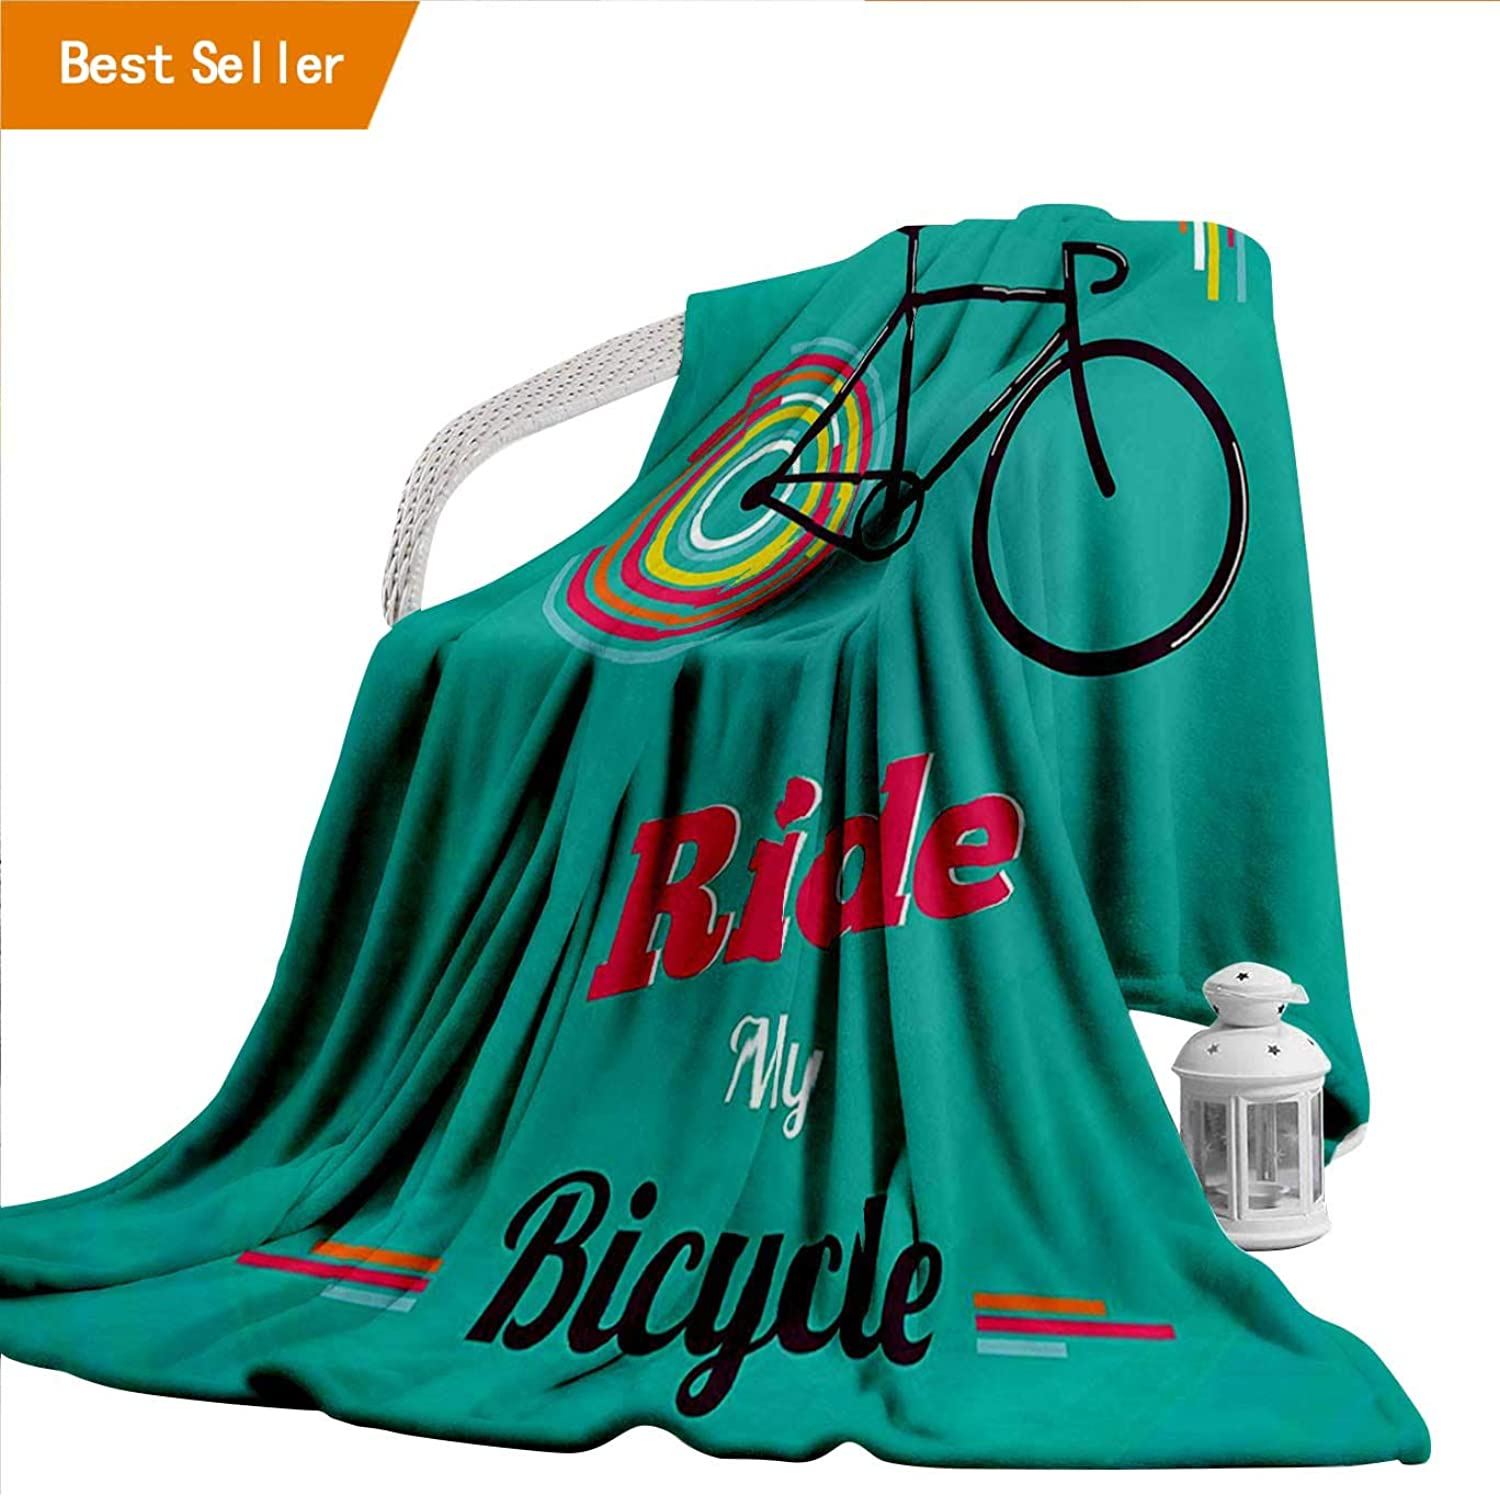 Flannel Throw Blanket, Vintage Ride My Bicycle Theme Poster Style Retro Bike Hipster Art Illustration Teal Hot Bedspread Blanket for Home,300GSM, Super Soft and Warm, Durable Twin 60  x 70